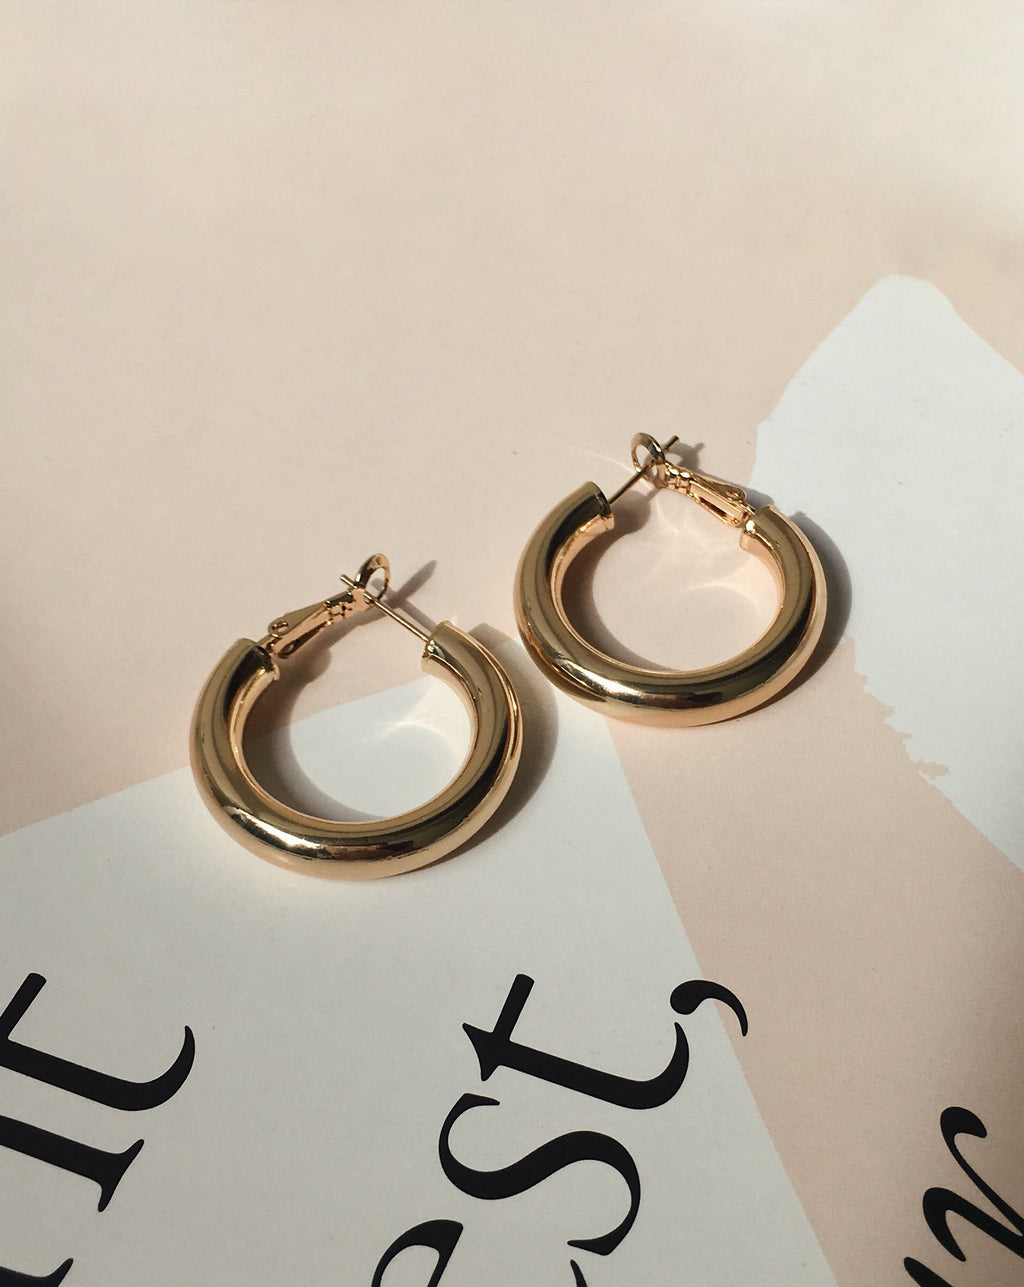 Kyo Hoops in 28mm diameter - gold-plated thick and hollow chunky hoop earrings - The Hexad